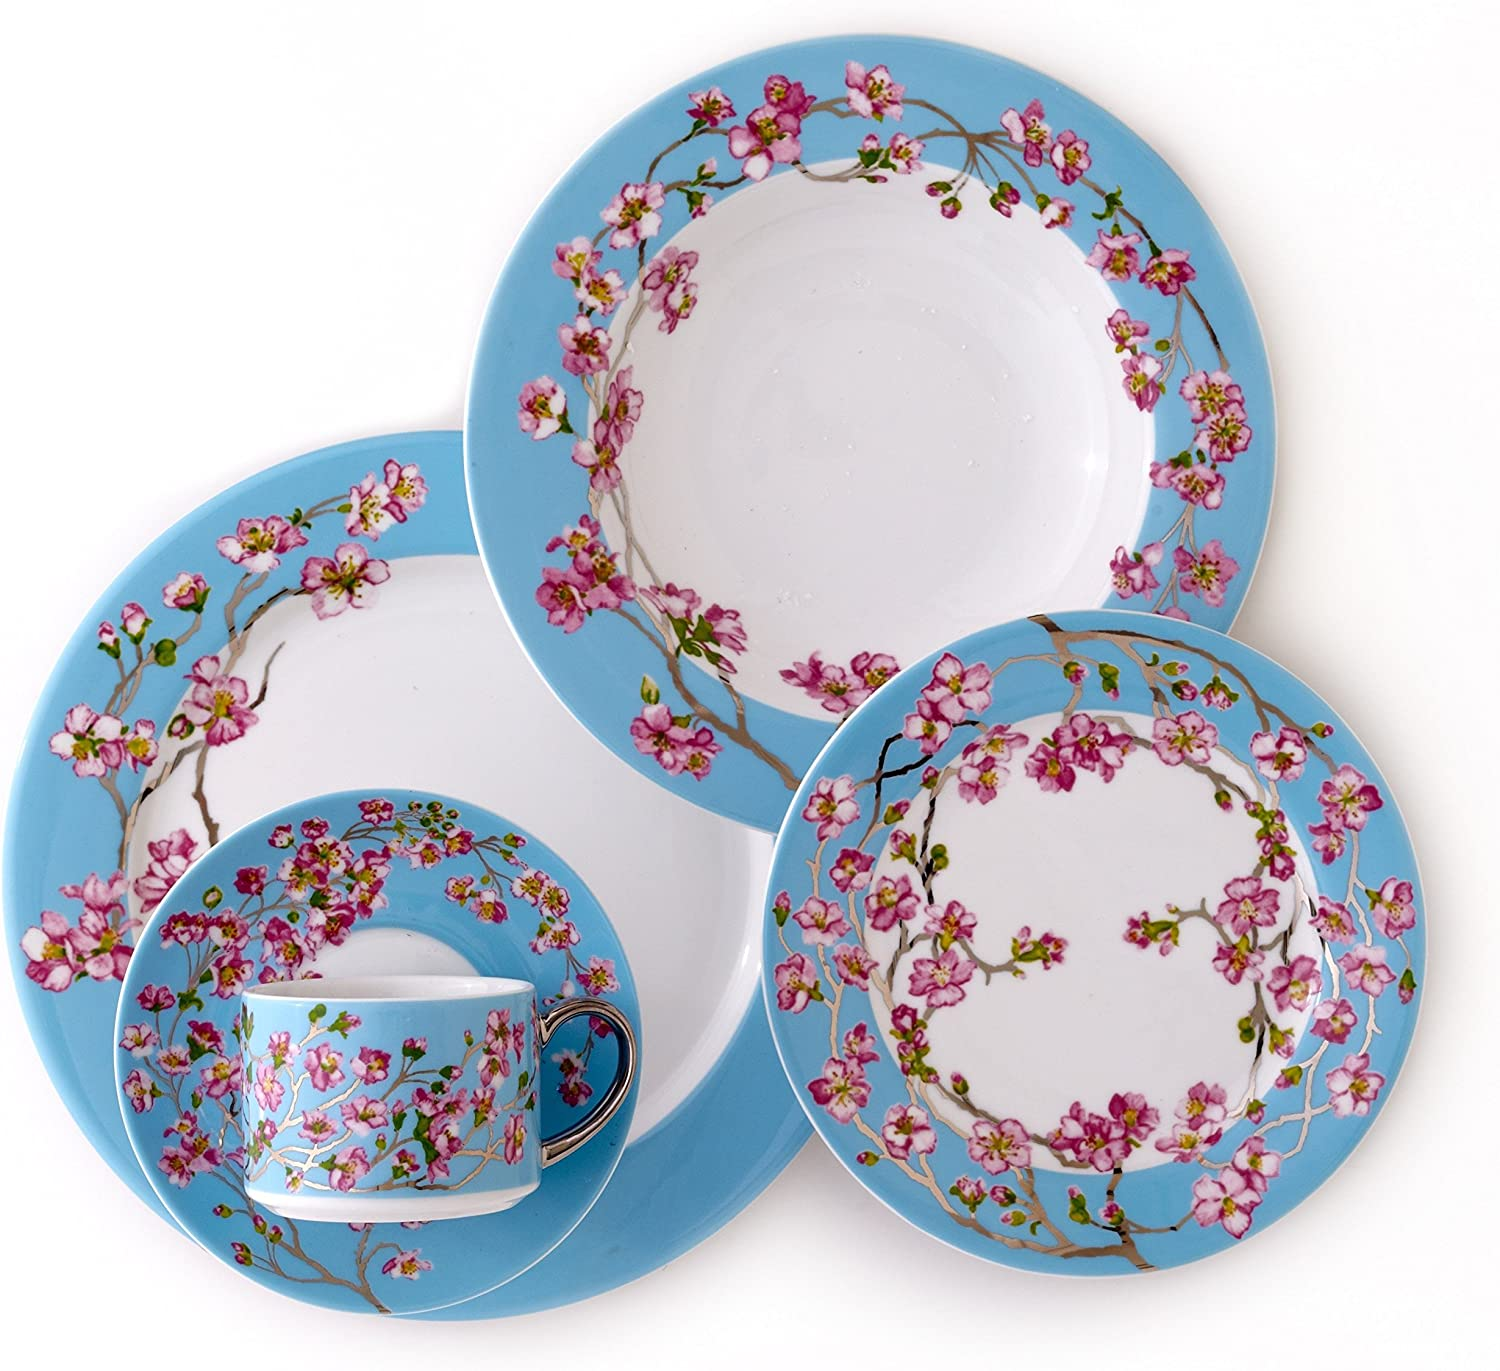 April in NY 5 Piece Place Setting Dinnerware Set